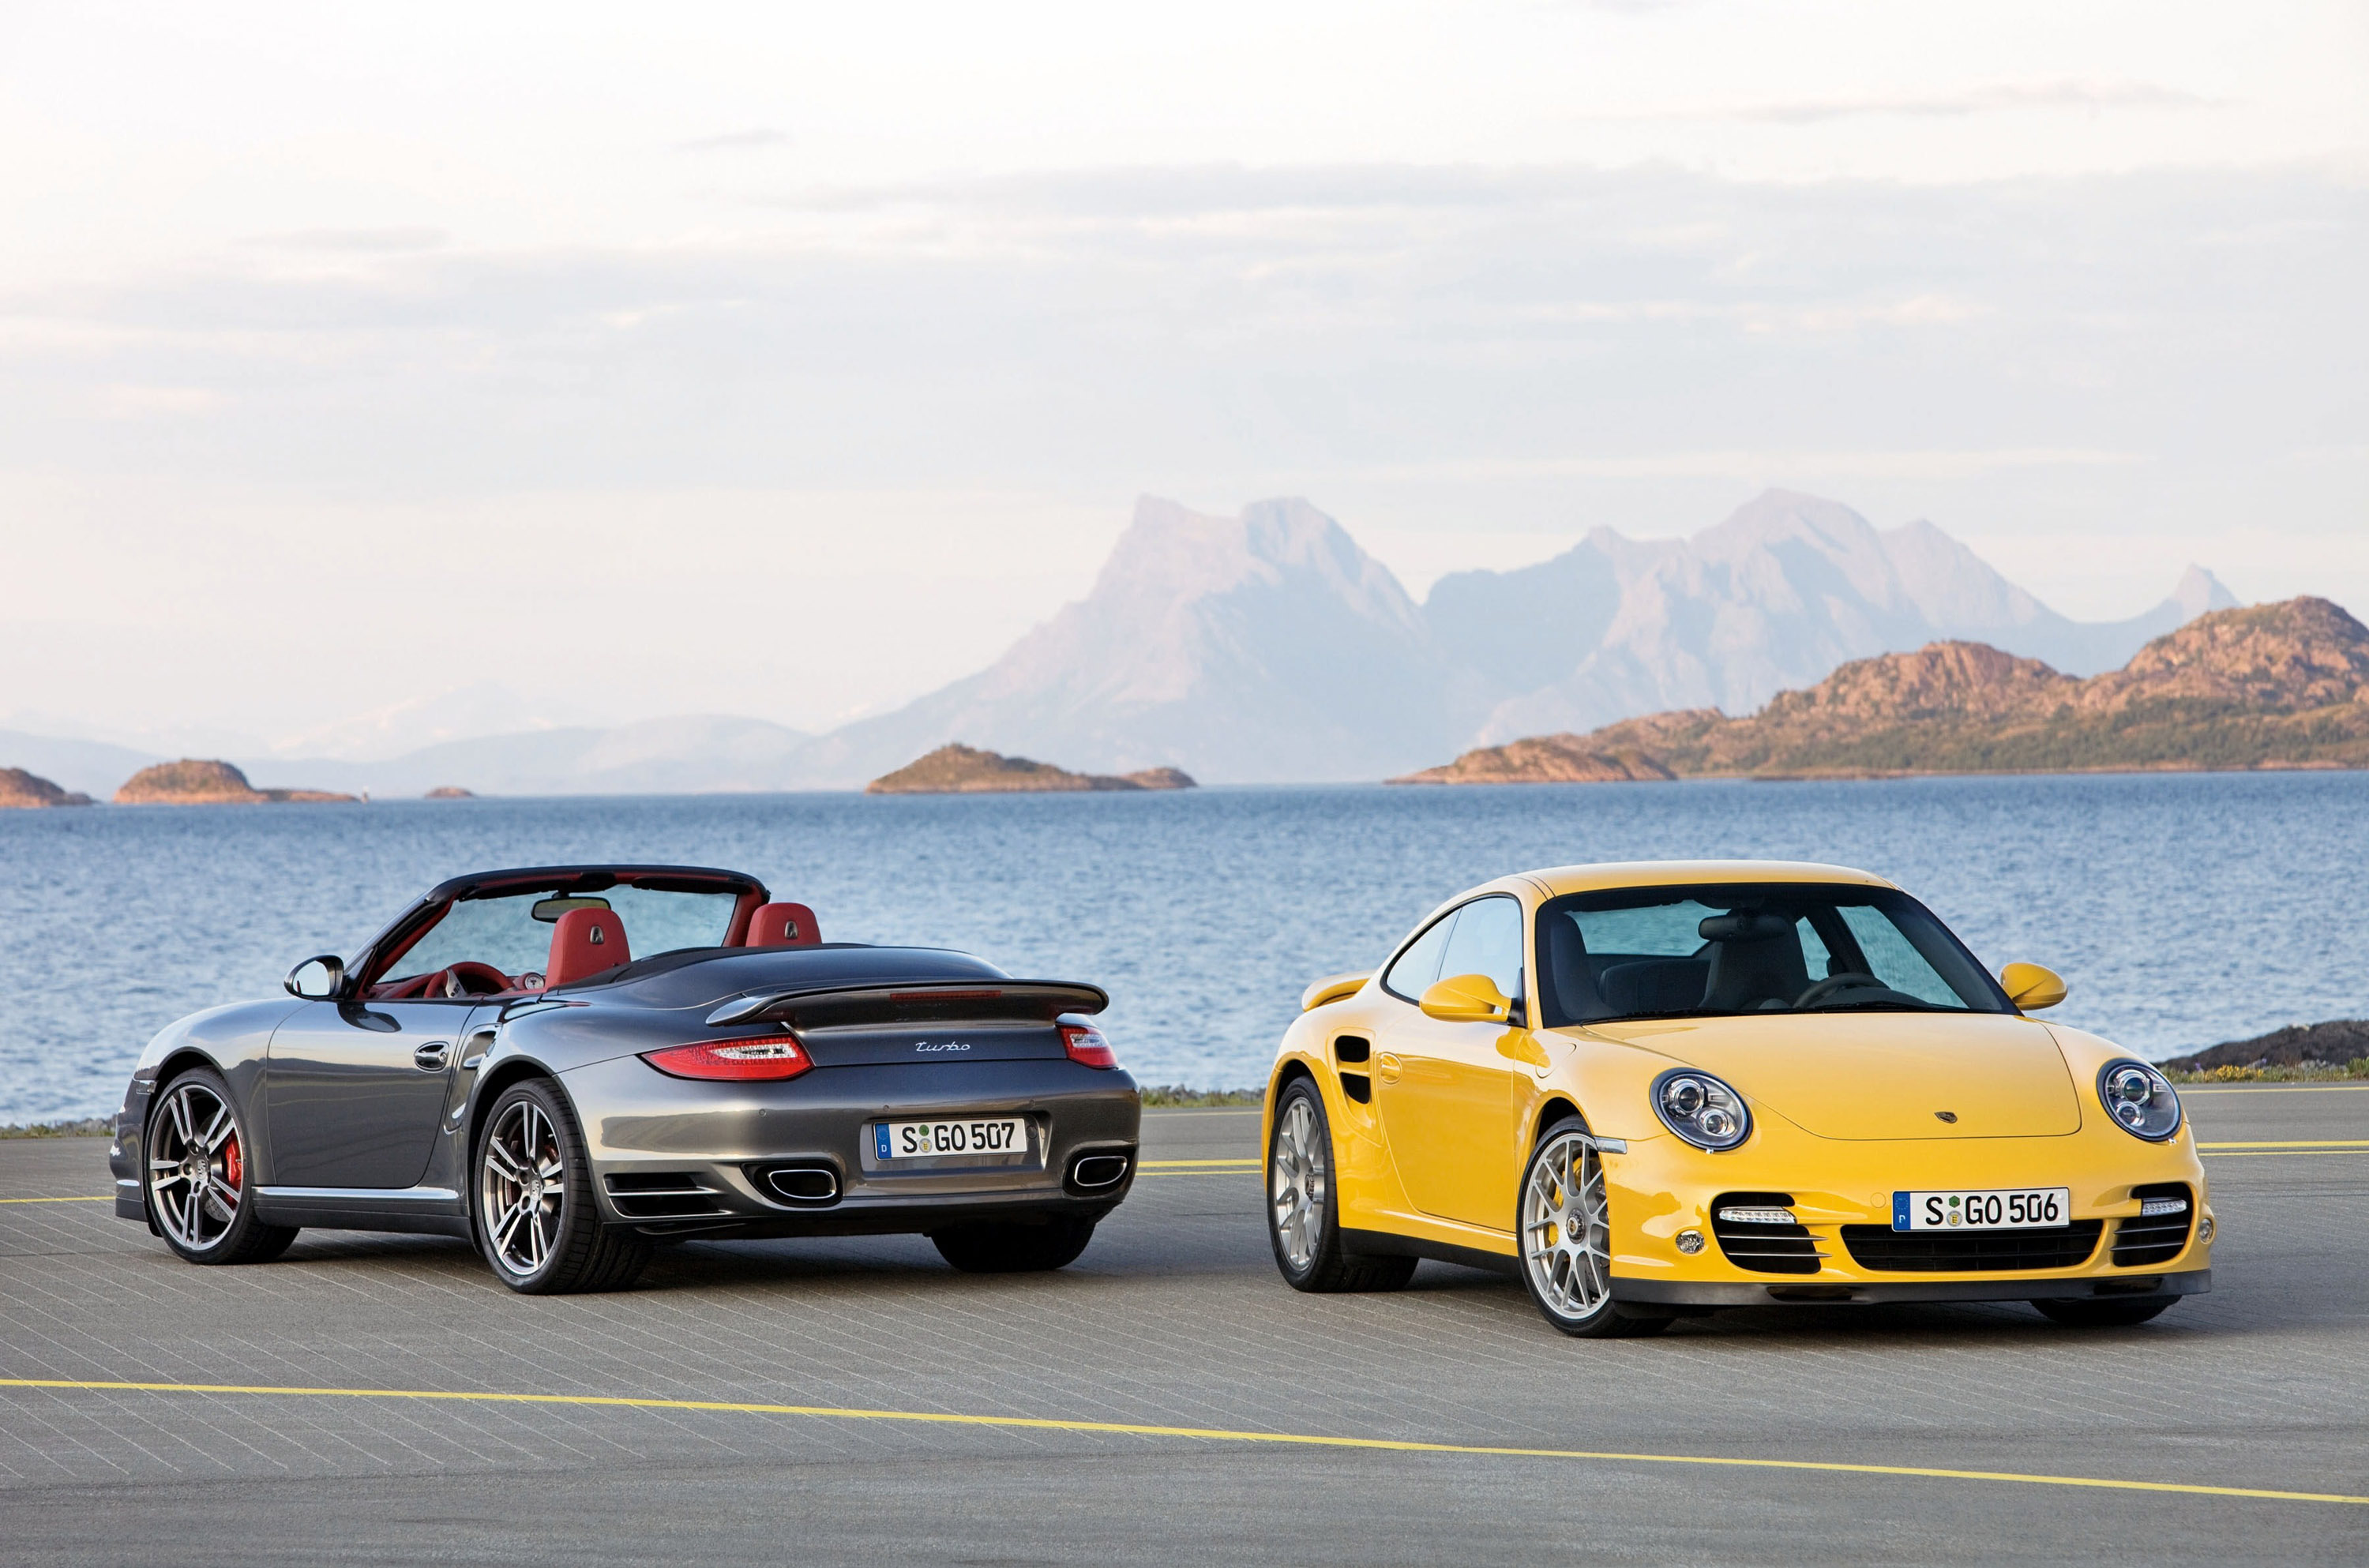 porsche-911-turbo-01 Mesmerizing Porsche 911 Turbo Vs Z06 Cars Trend